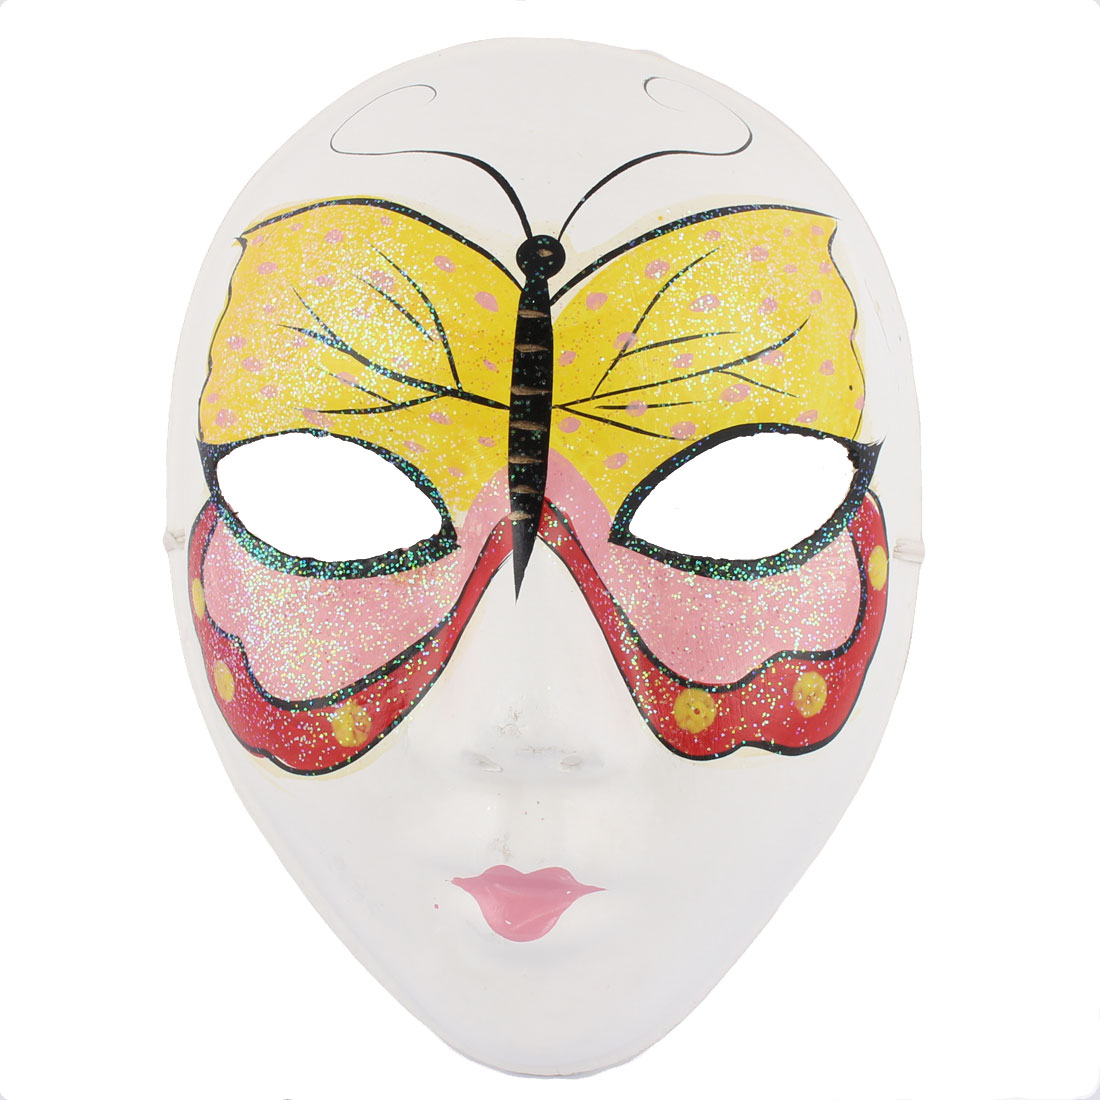 Woman Gypsum Hand Paint Beijing Peking Opera Facial Fashion Costume Makeup Mask